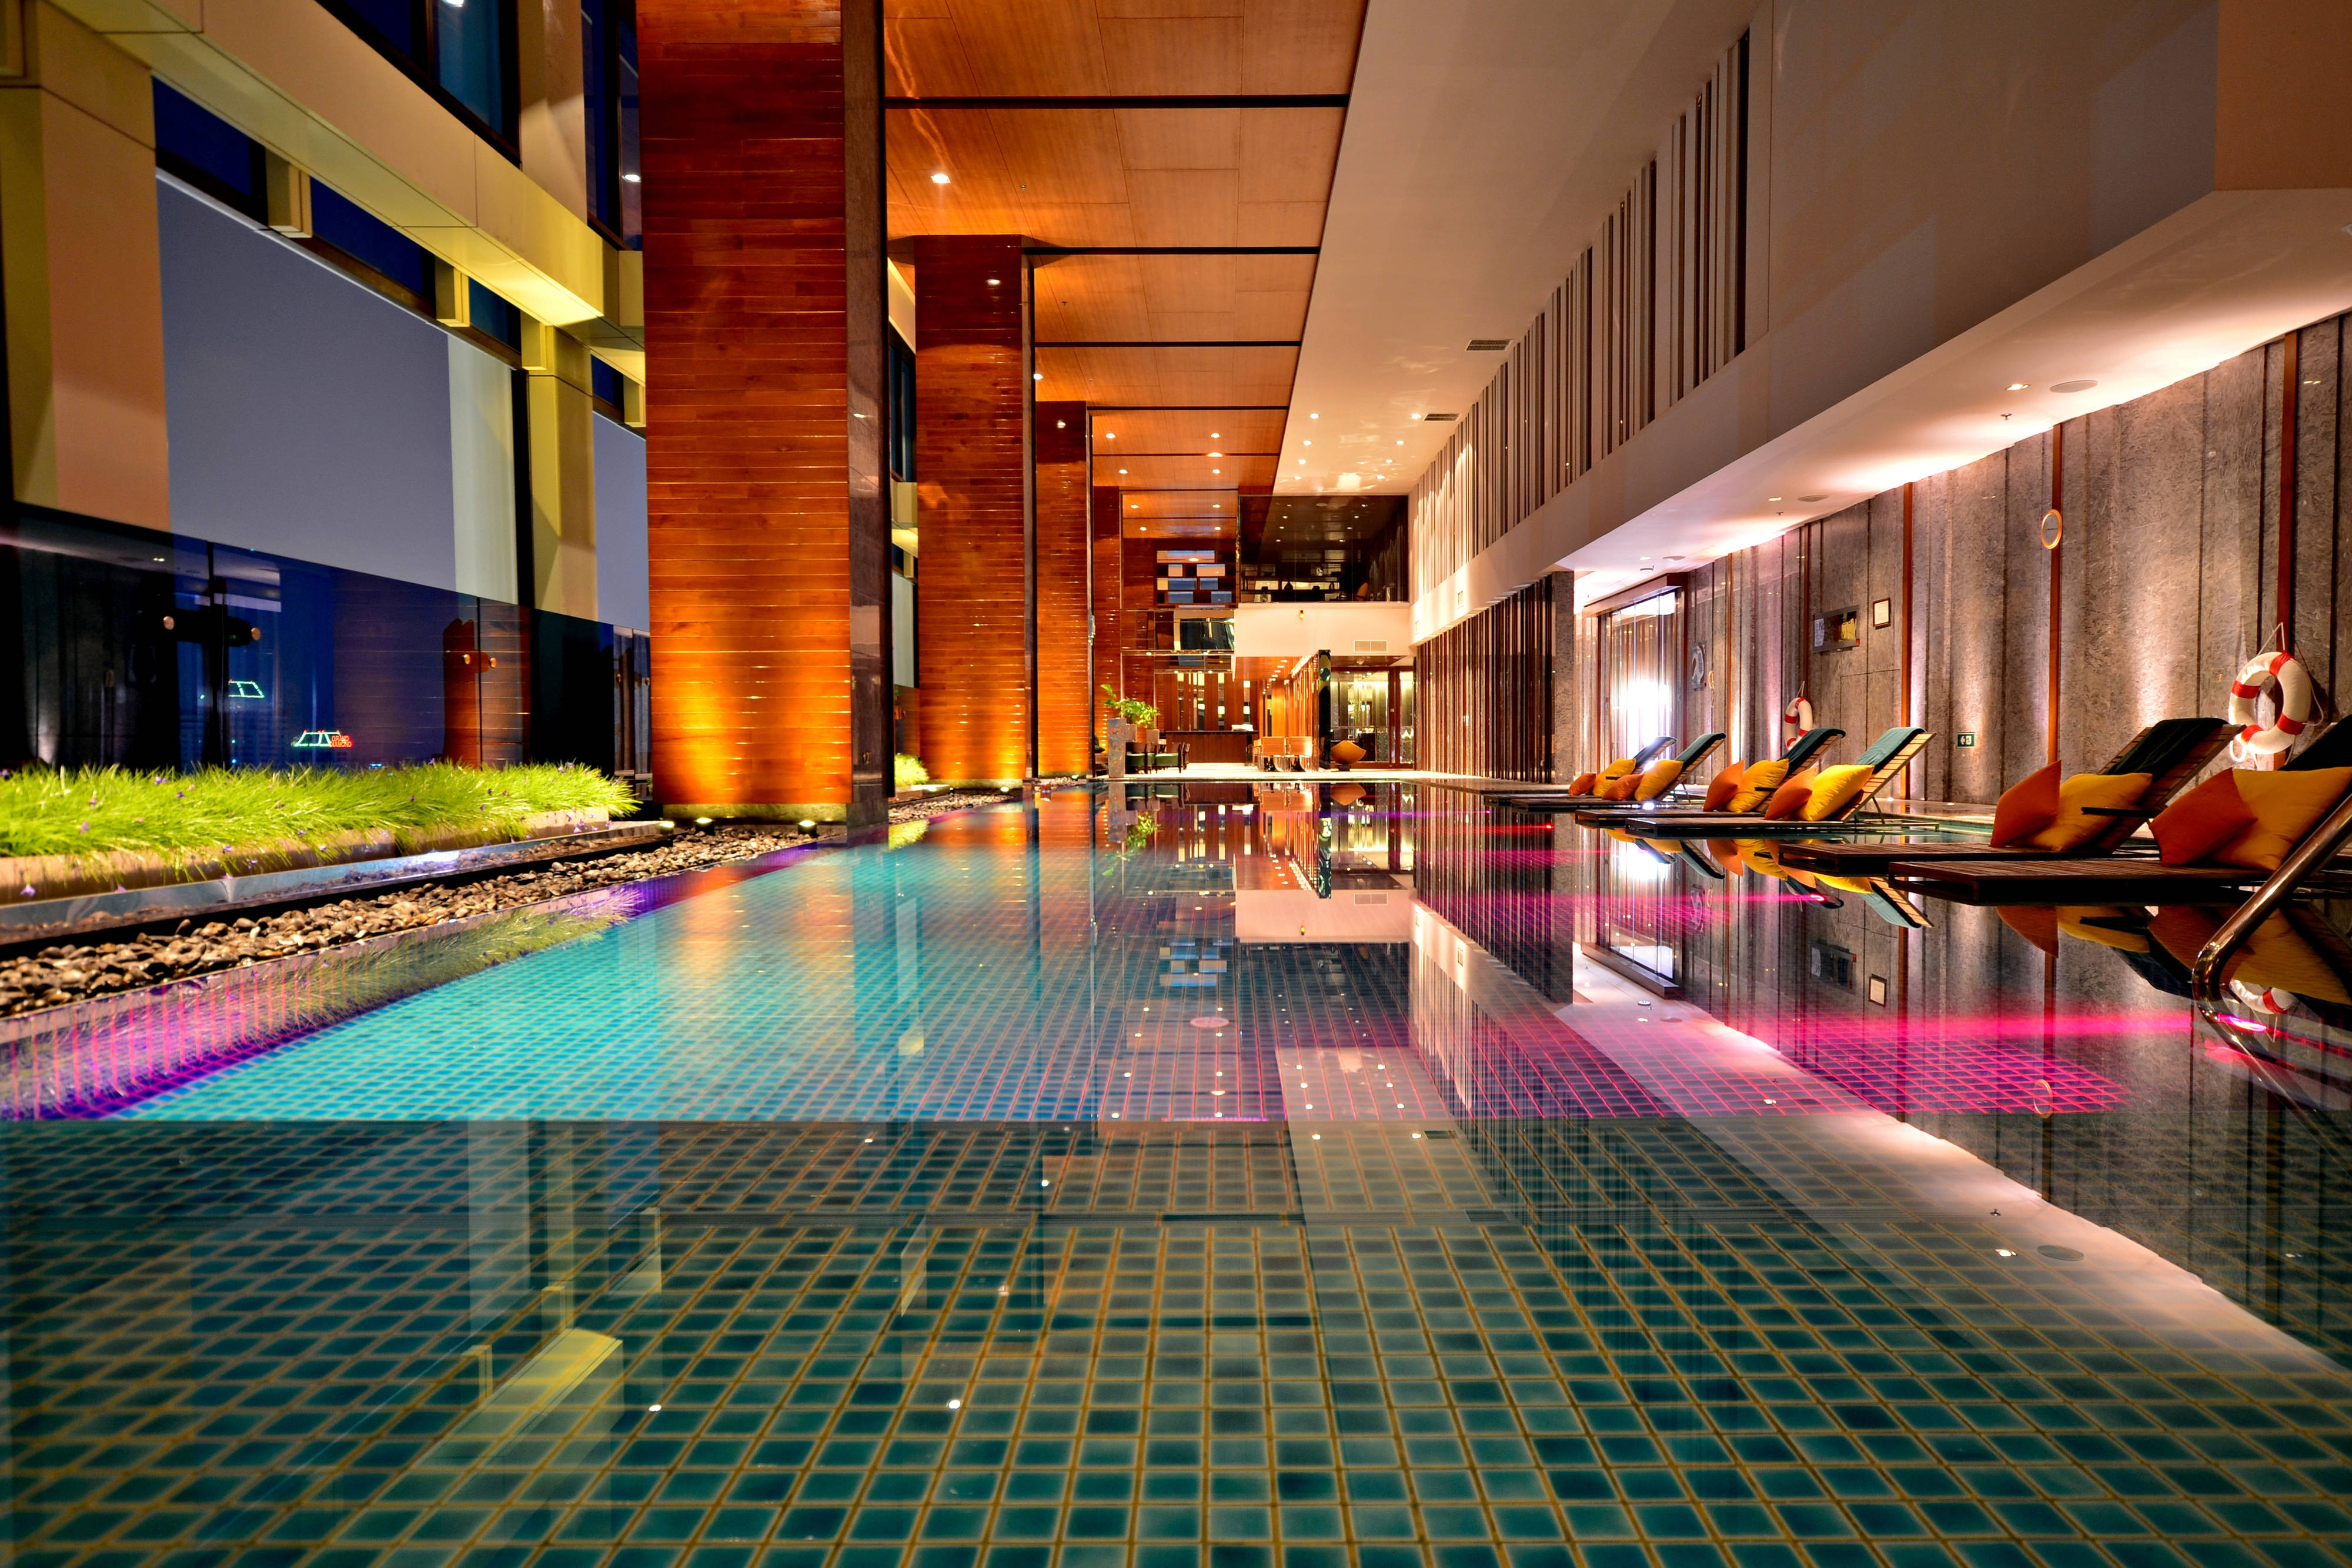 Indoor pool in Bangkok hotel